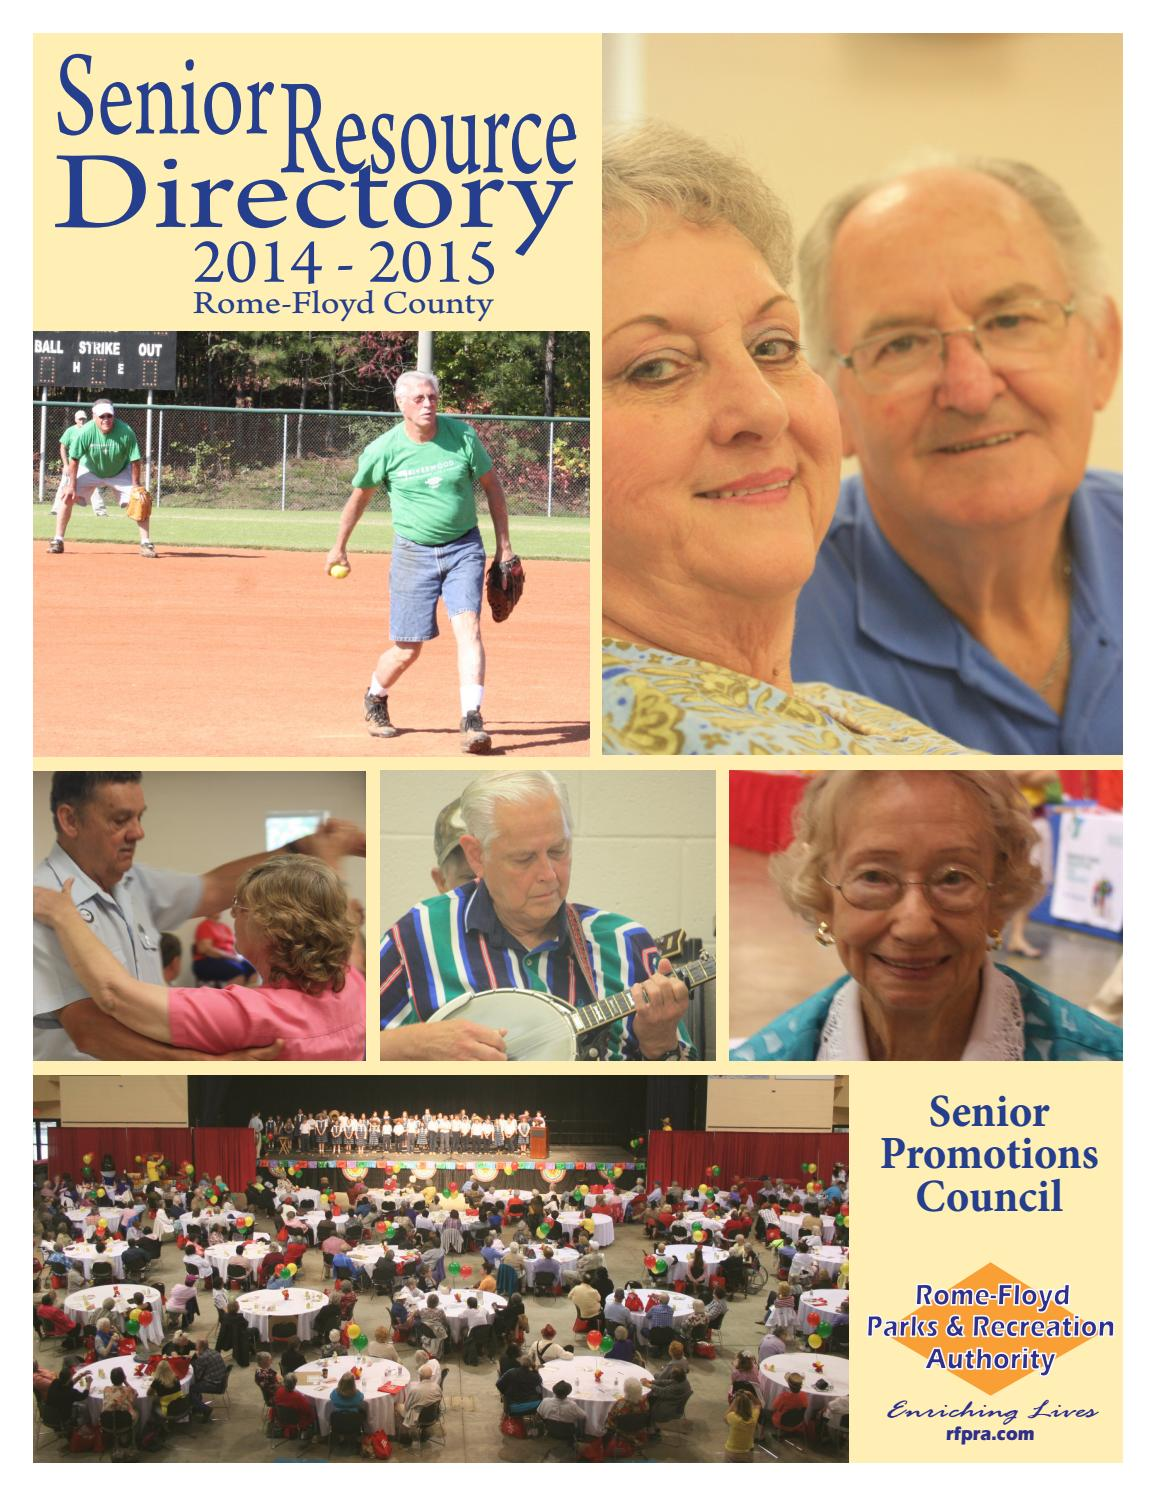 Good shepherd funeral home rome ga - Senior Resource Directory 2014 By Rome Floyd Parks And Recreation Issuu